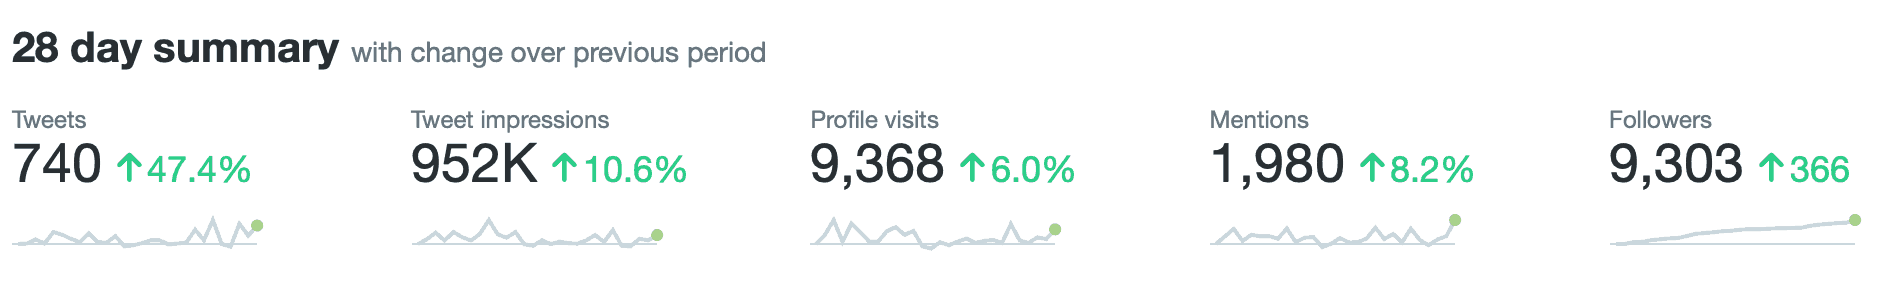 An easy guide to understanding Twitter analytics: gaining followers